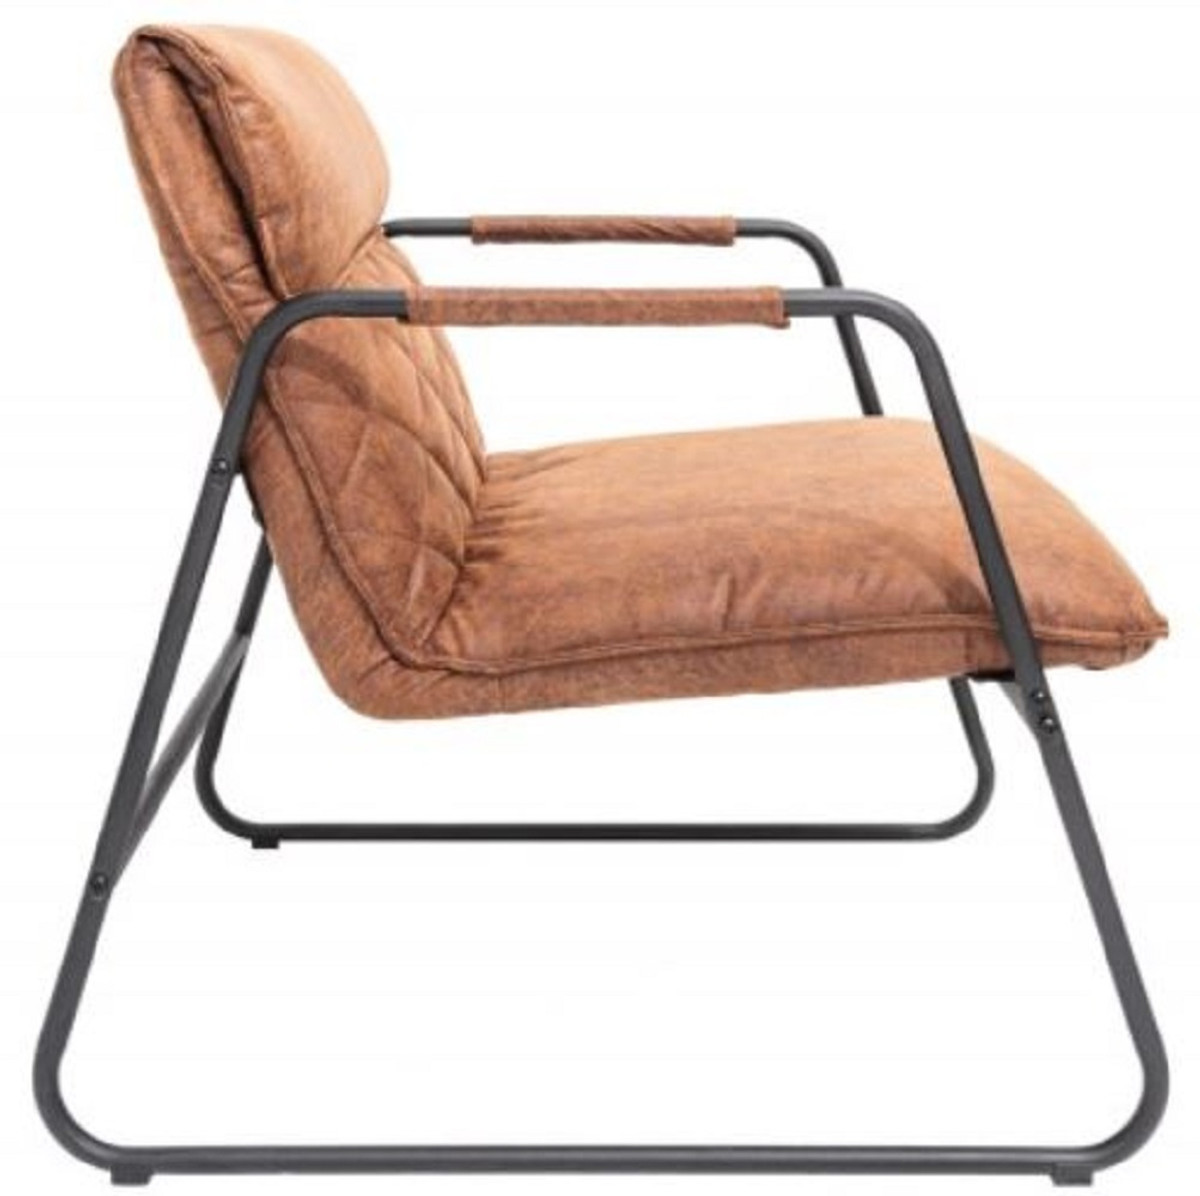 Ledersessel Lounge Casa Padrino Retro Lounge Chair Vintage Light Brown / Black 71 X 72 X H. 79 Cm - Faux Leather Armchair With Metal Frame - Living Room Furniture |